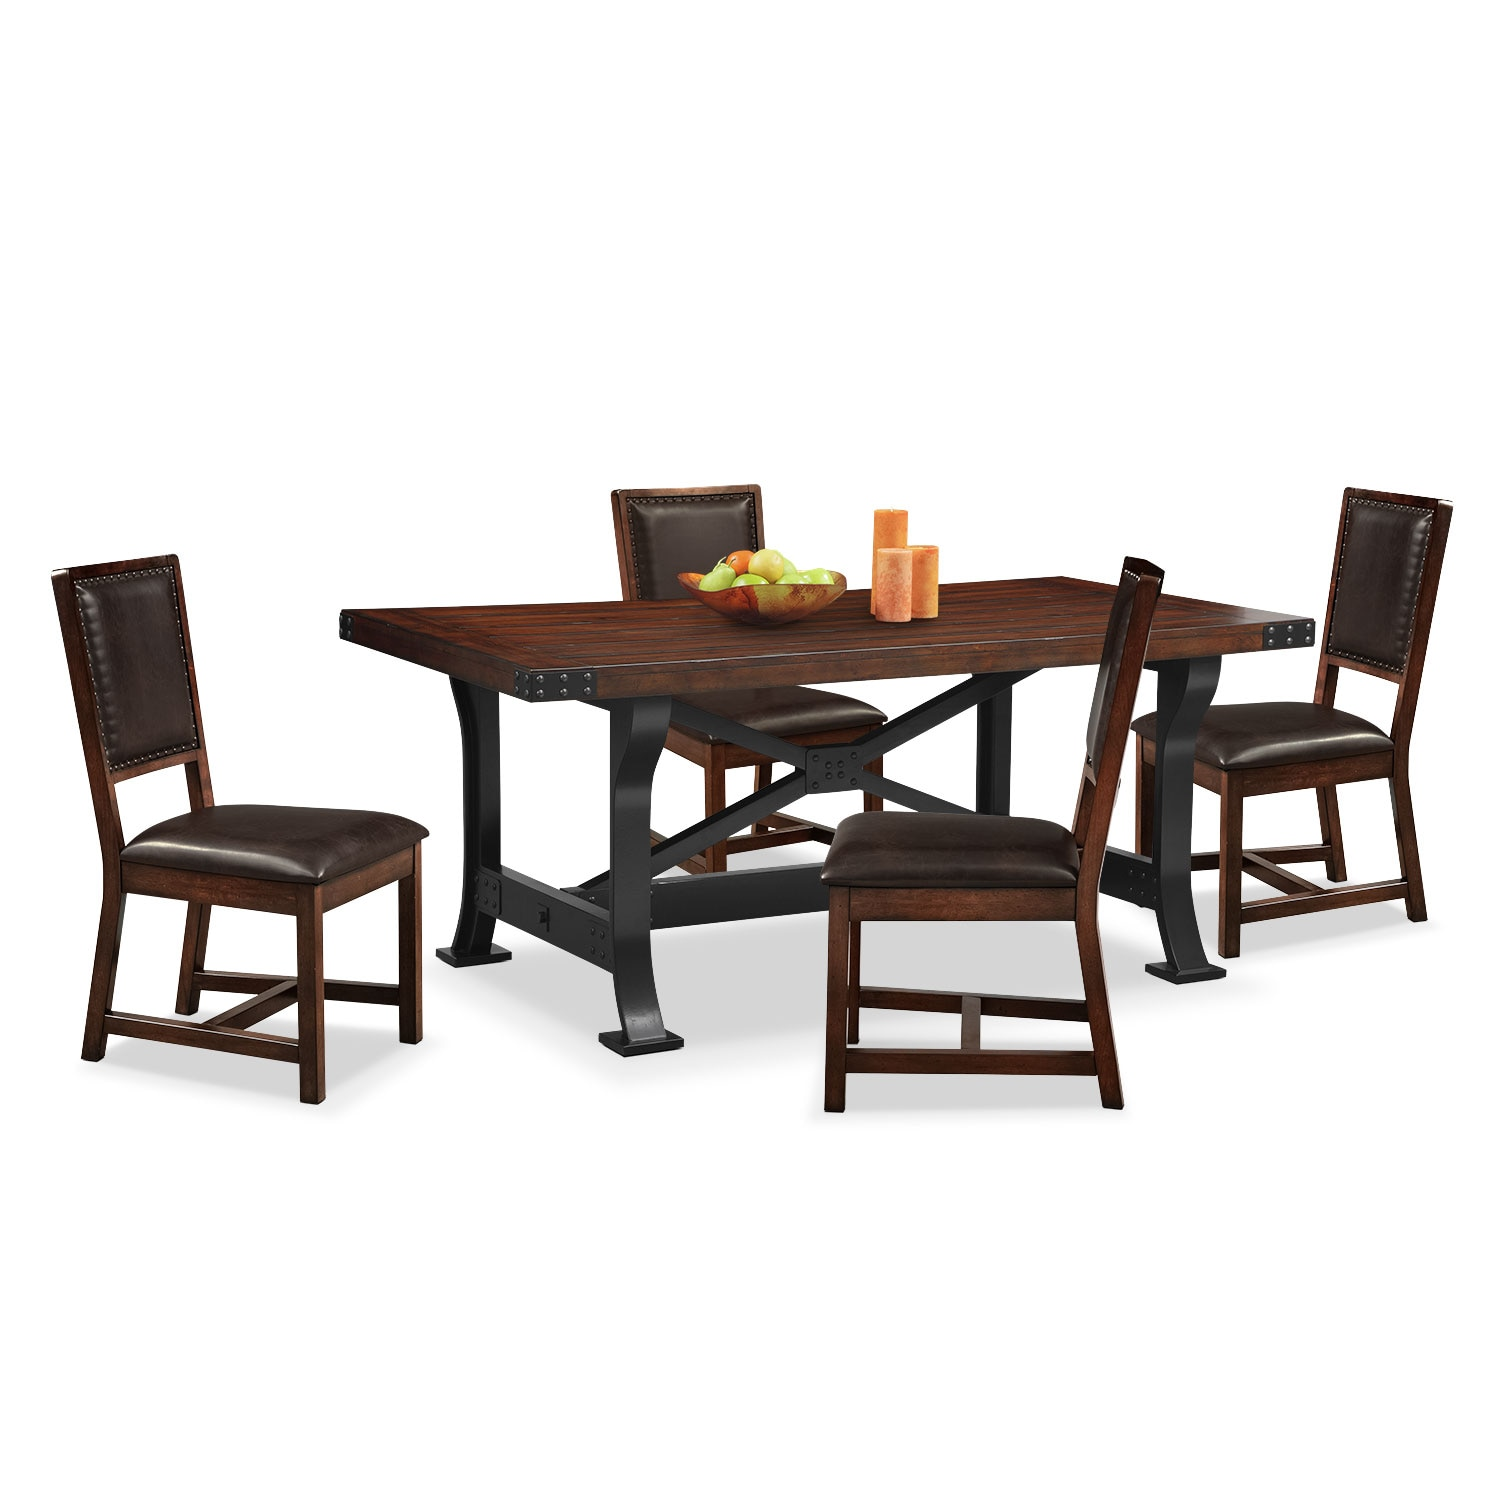 Newcastle Dining Table Mahogany American Signature Furniture